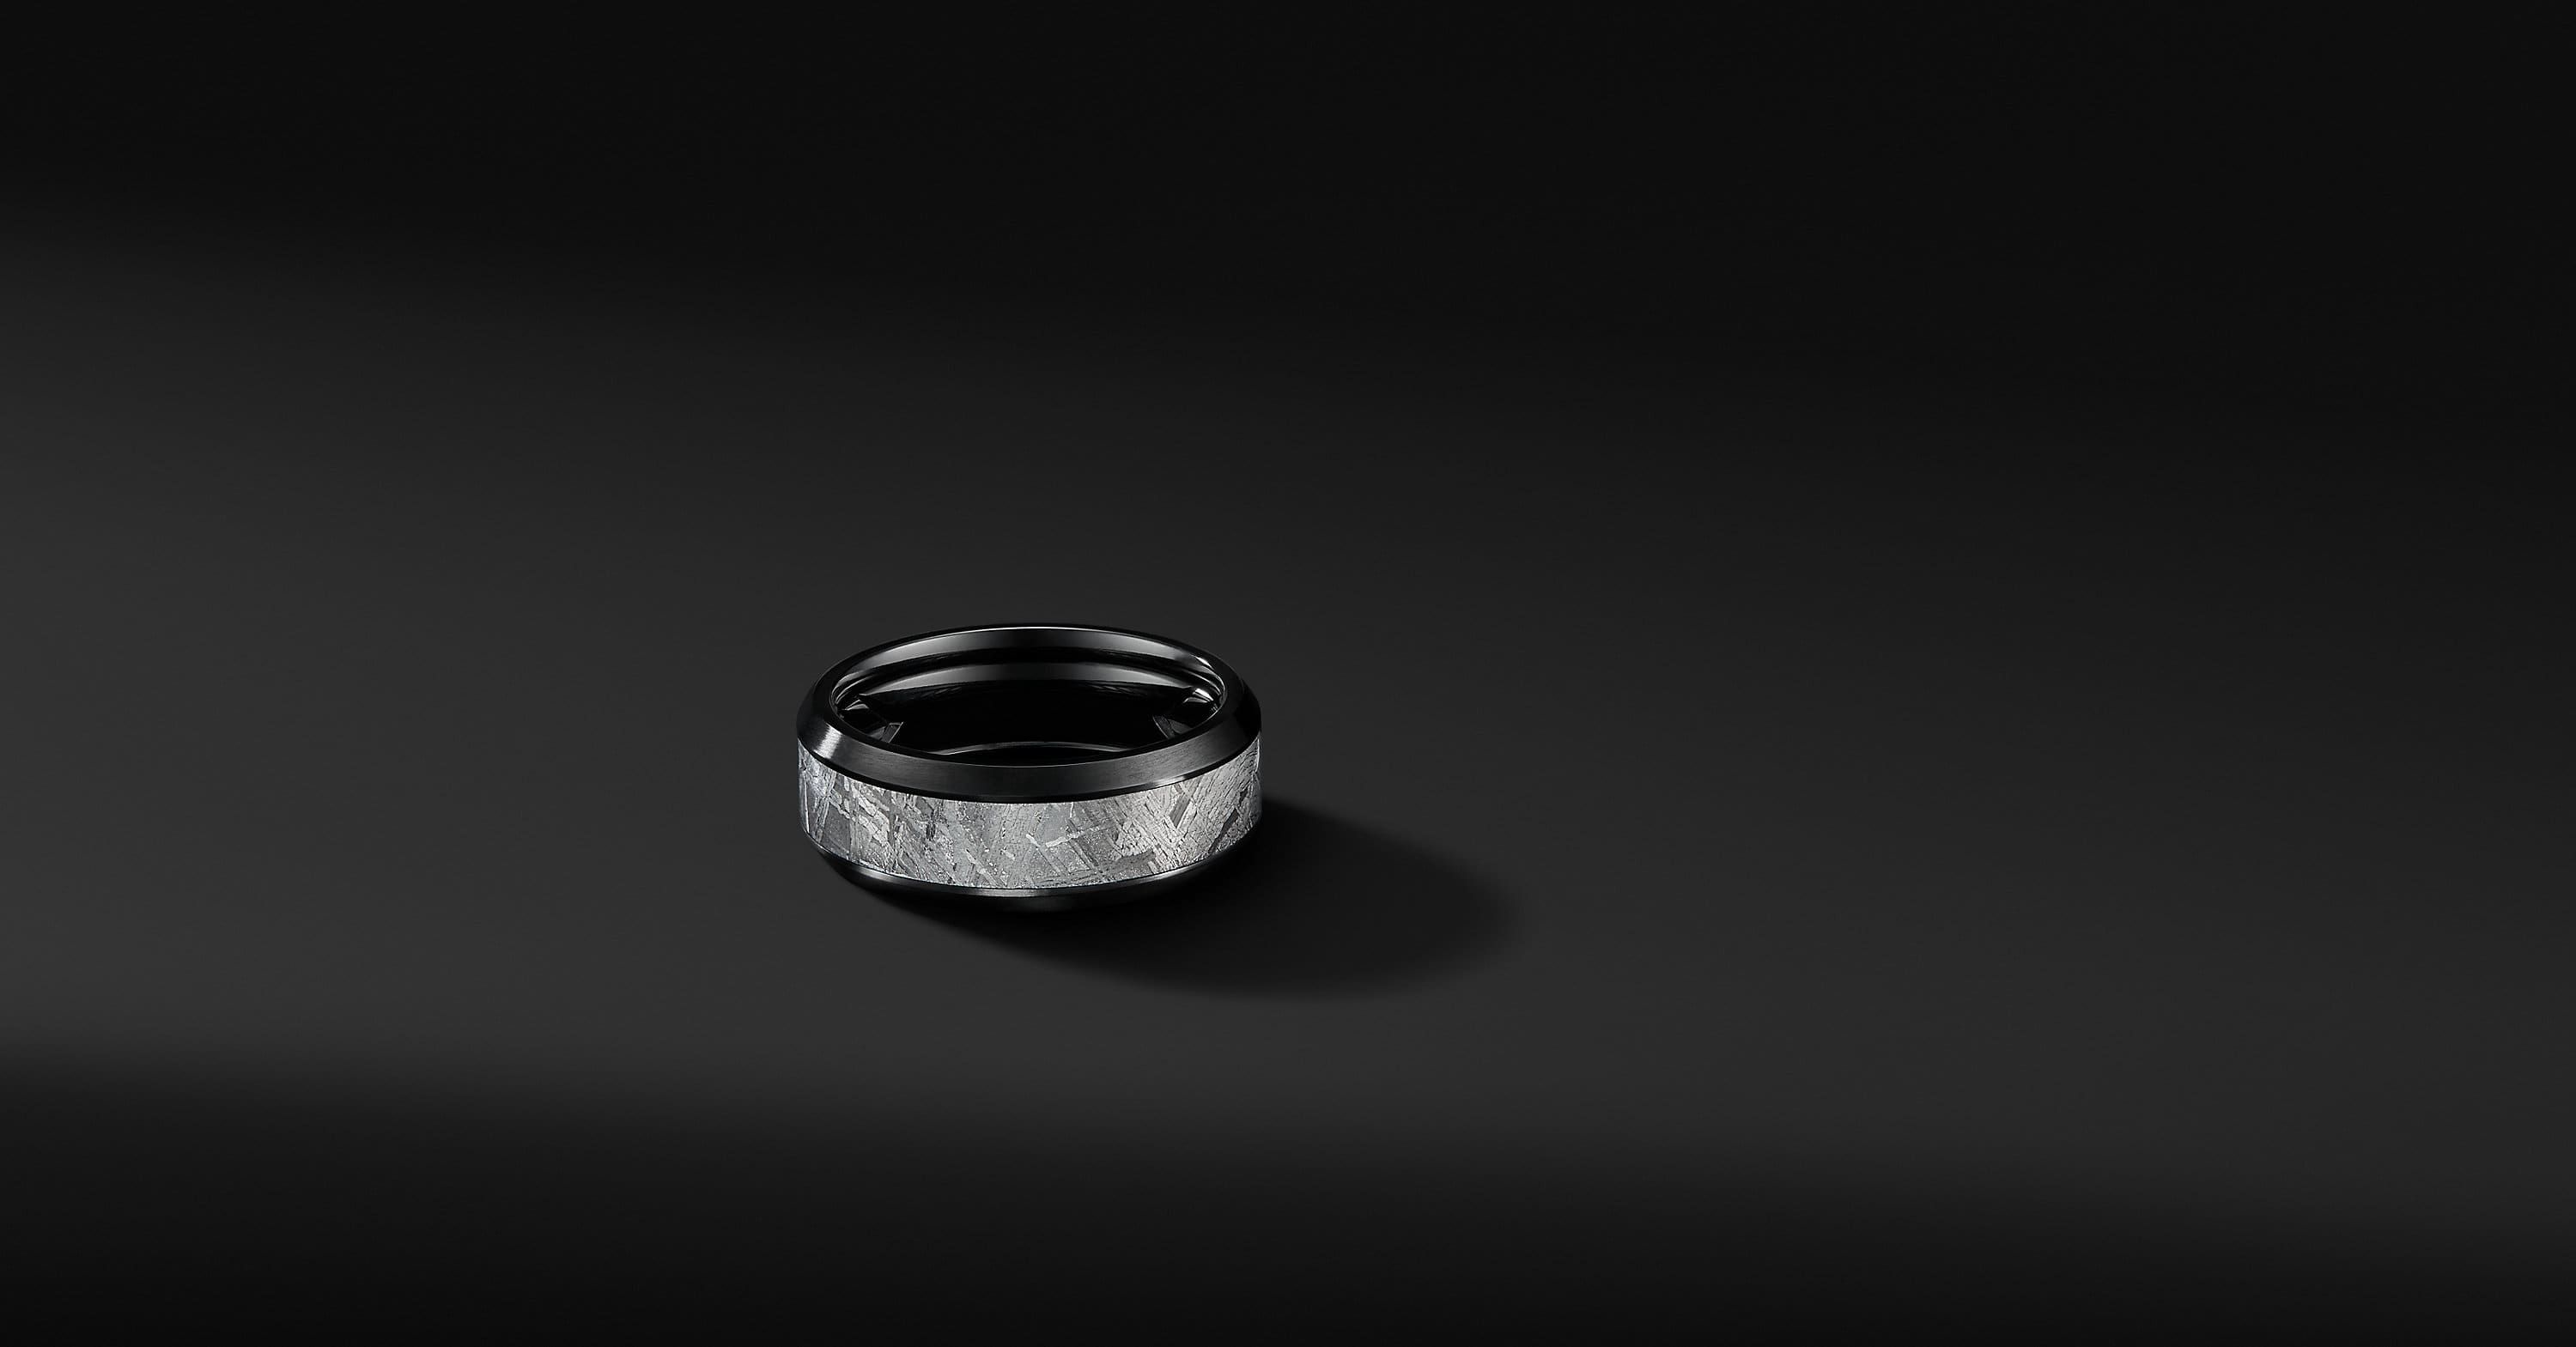 Beveled Band Ring in Black Titanium, 8.5mm